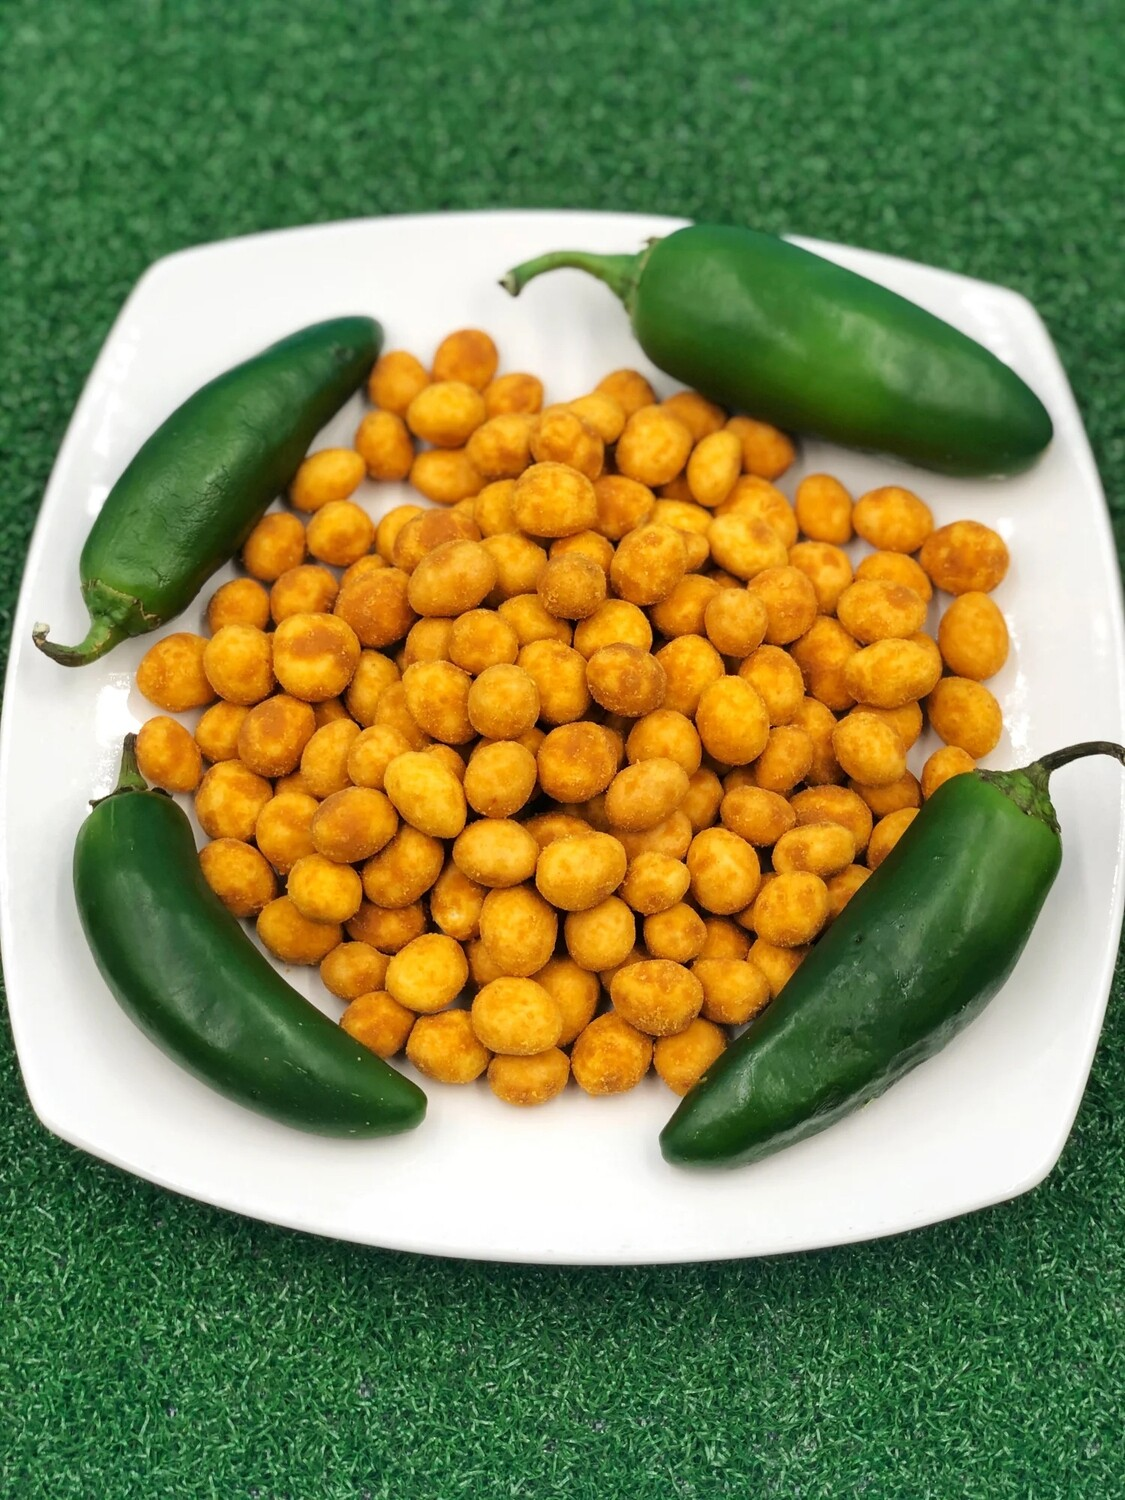 Jalapeño Cheese Peanuts ( NEW ITEM)